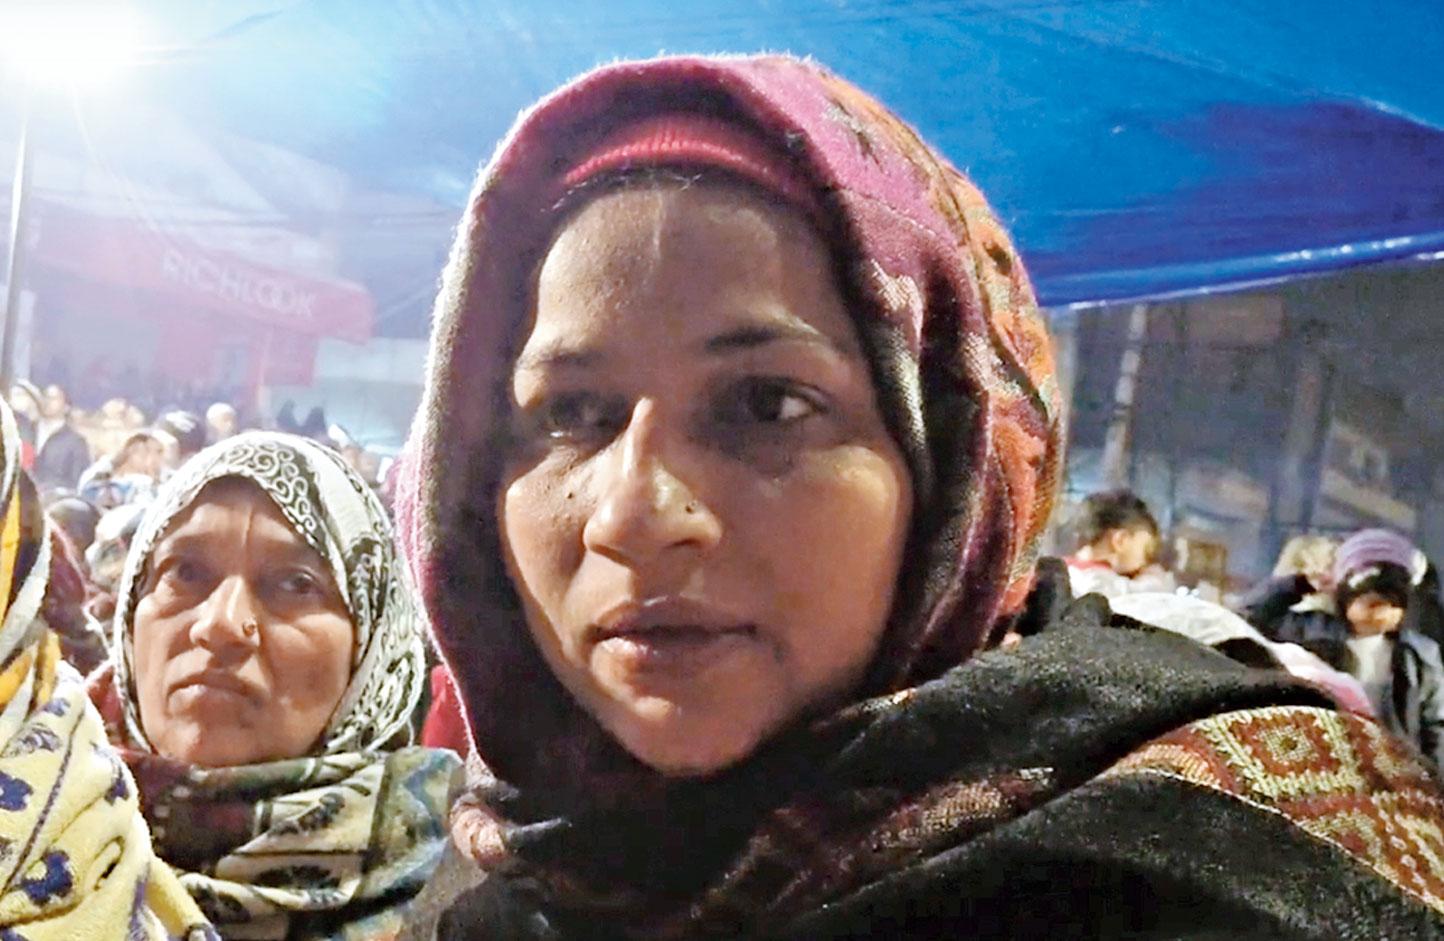 The woman who spoke braves the biting cold at Shaheen Bagh.